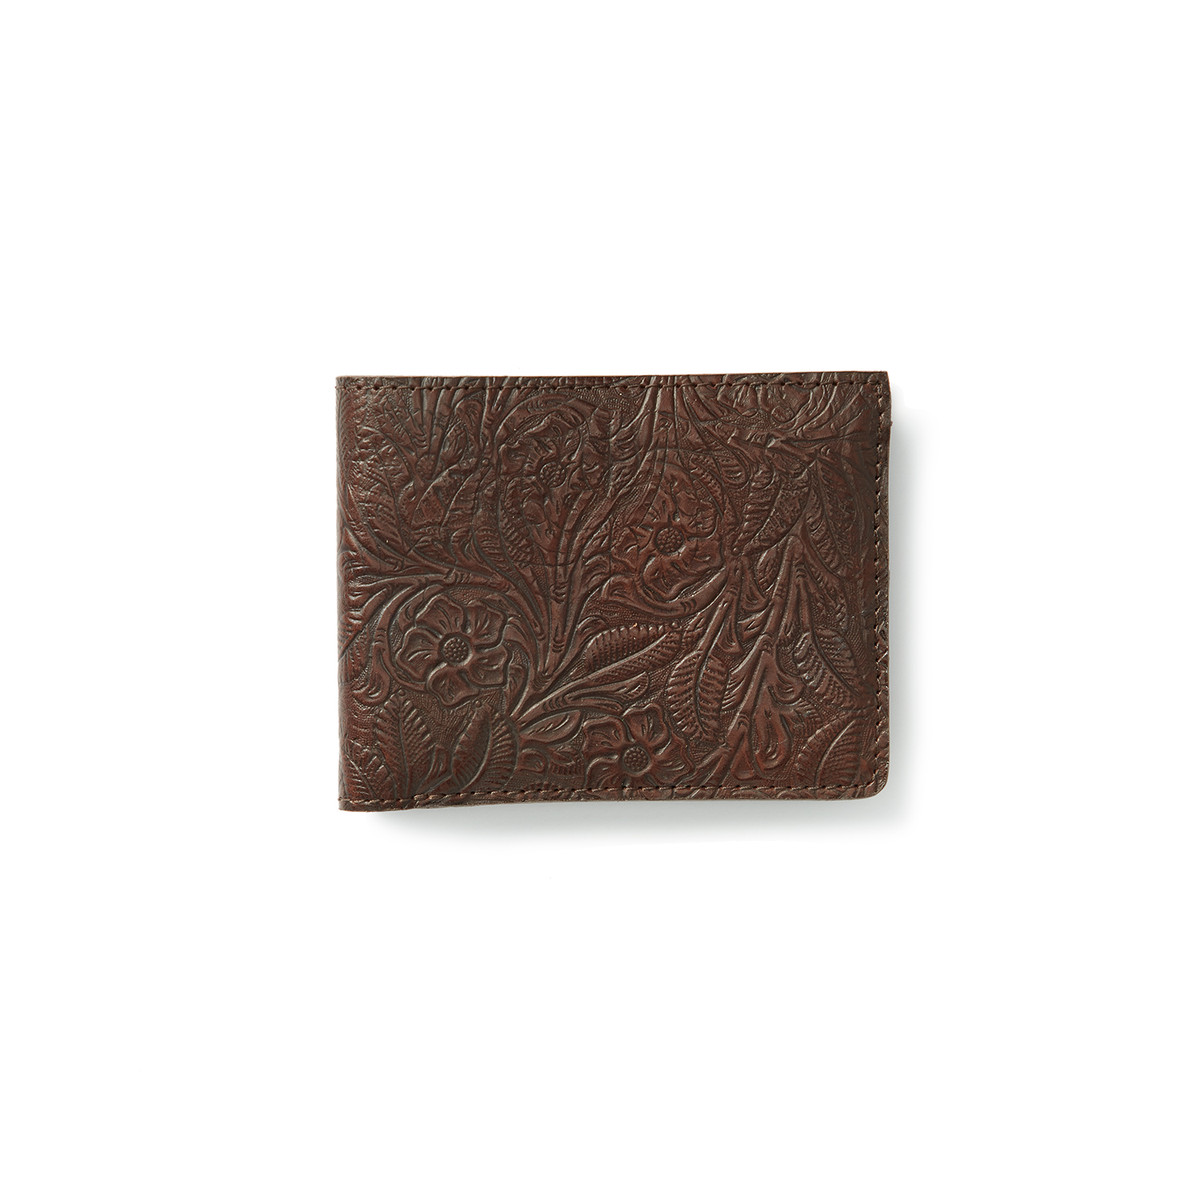 Hand tooled bi-fold leather wallet featuring four card pockets, transparent ID slot, and main pouch for plenty of cash